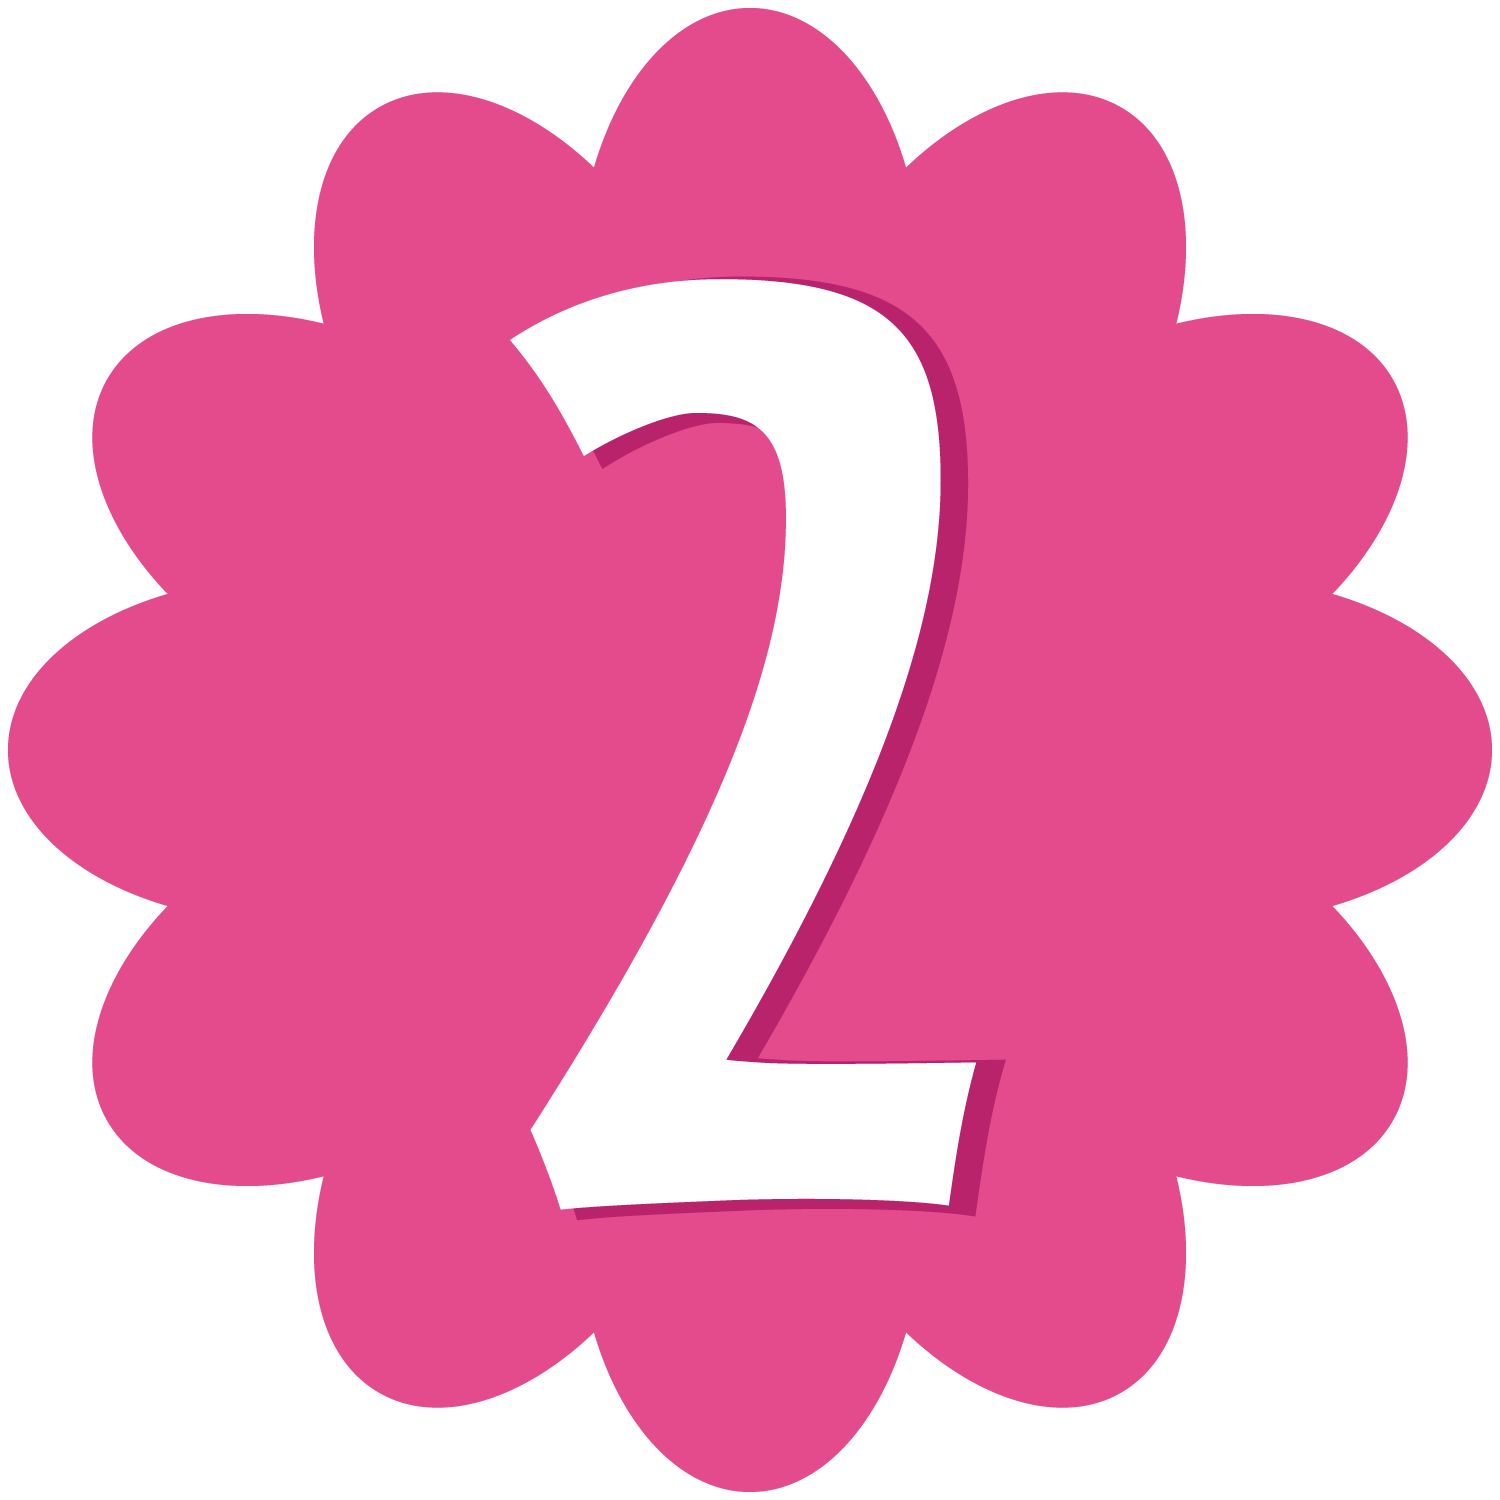 Numero 3 rosa png. Free birthday cliparts number